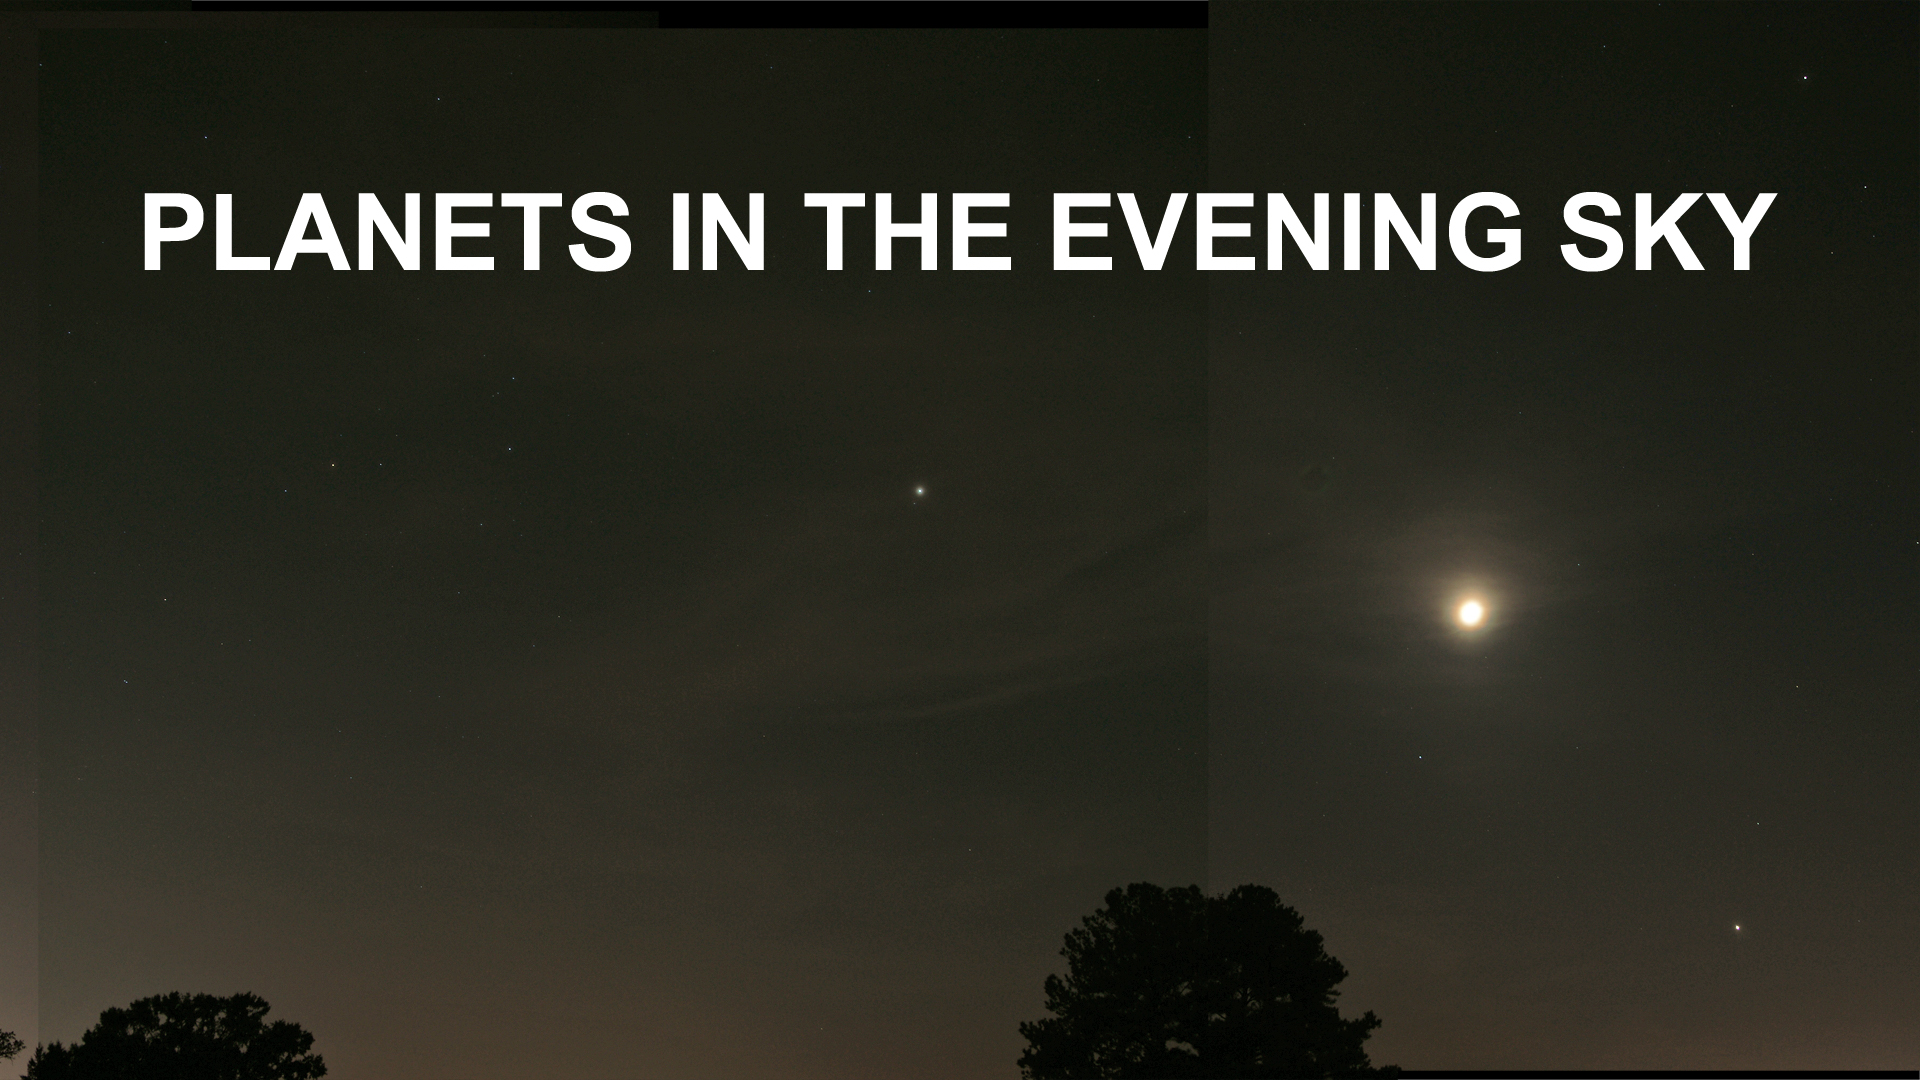 Evening sky presents planets.jpg